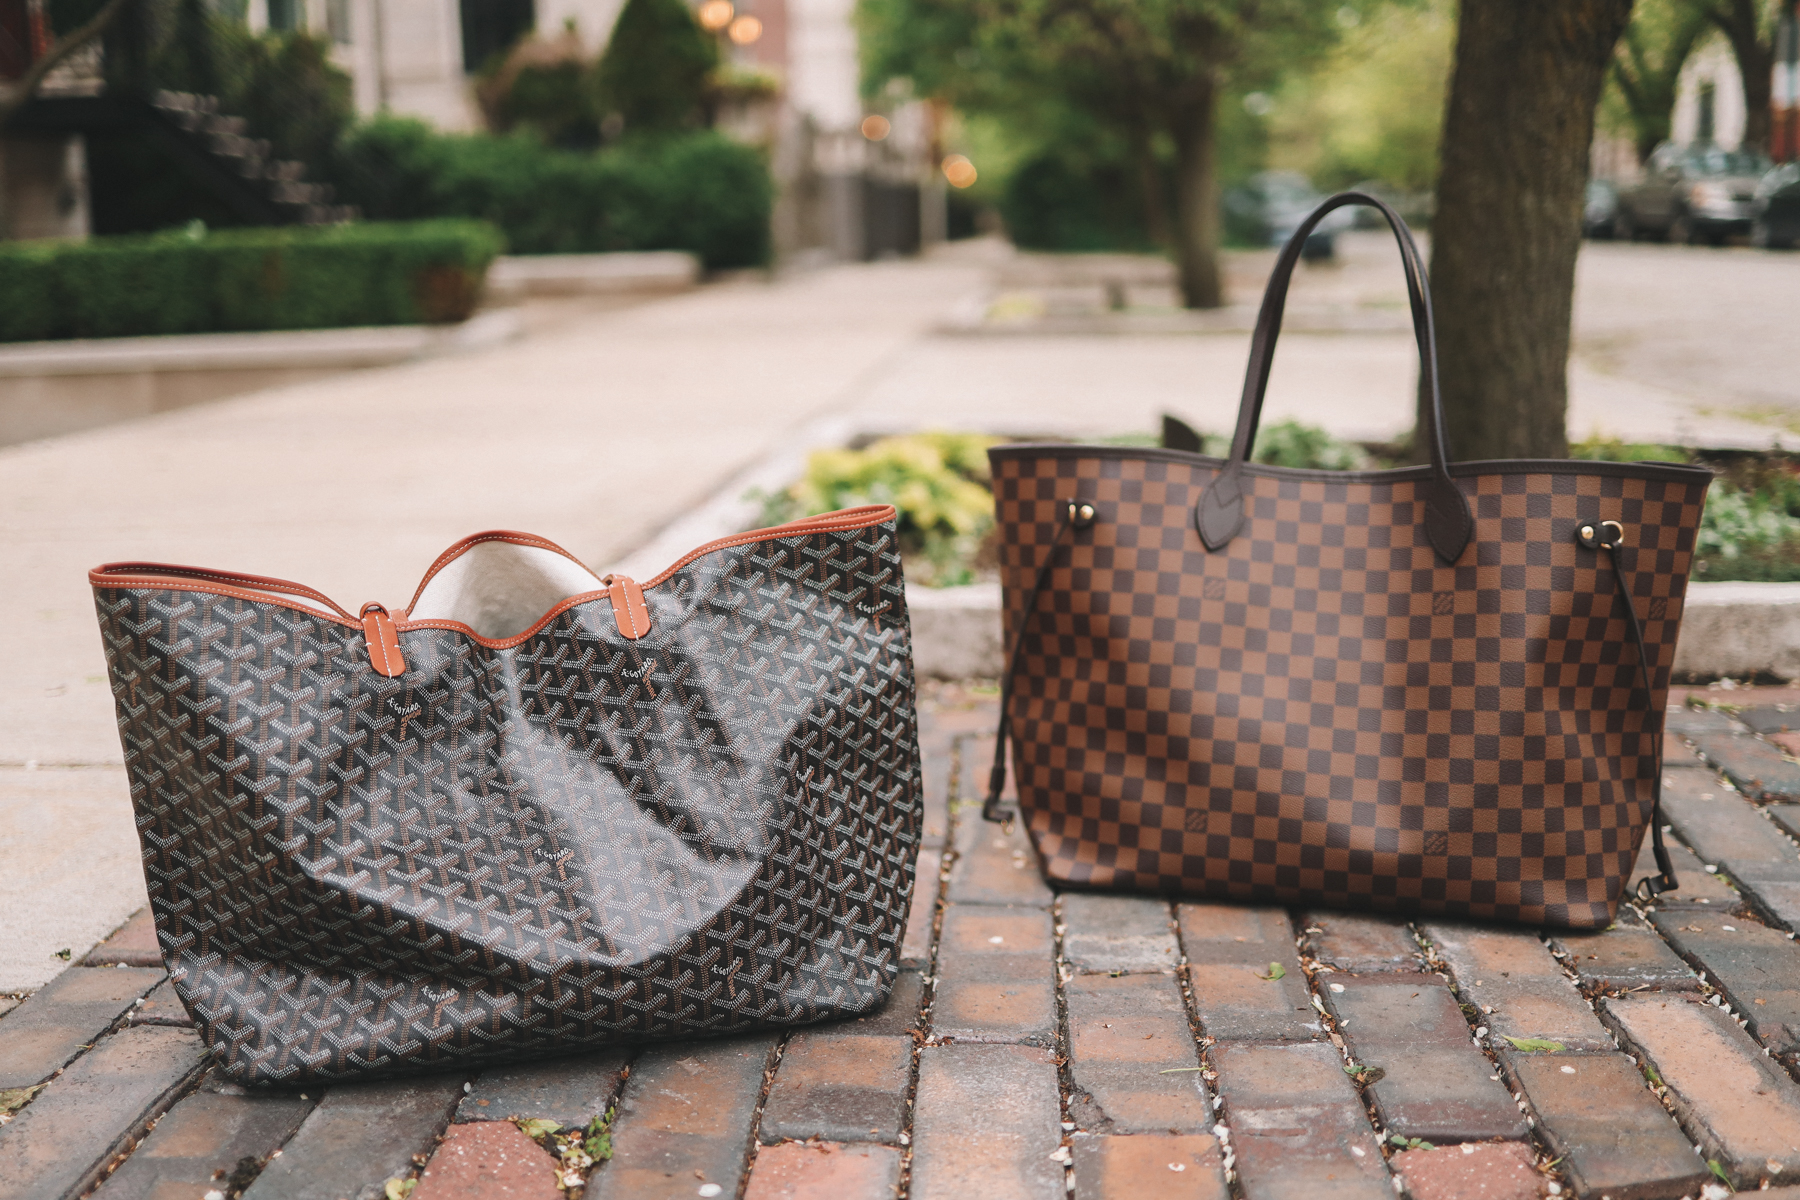 Louis Vuitton Neverfull vs Goyard Saint Louis Totes review by Kelly in the City